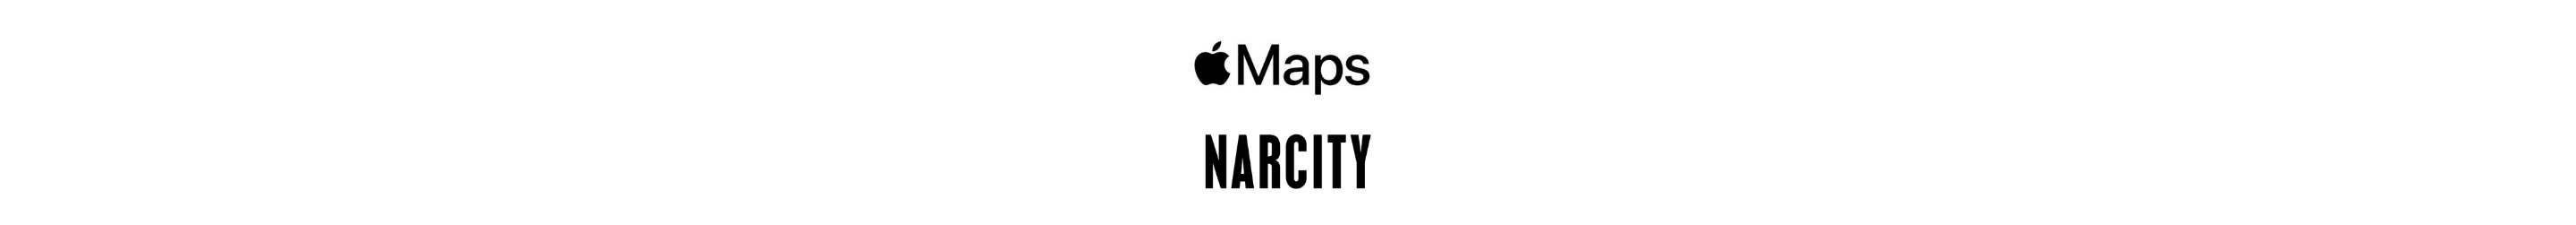 Narcity Media Selected By Apple Maps Guides In Canada For All-New Initiative